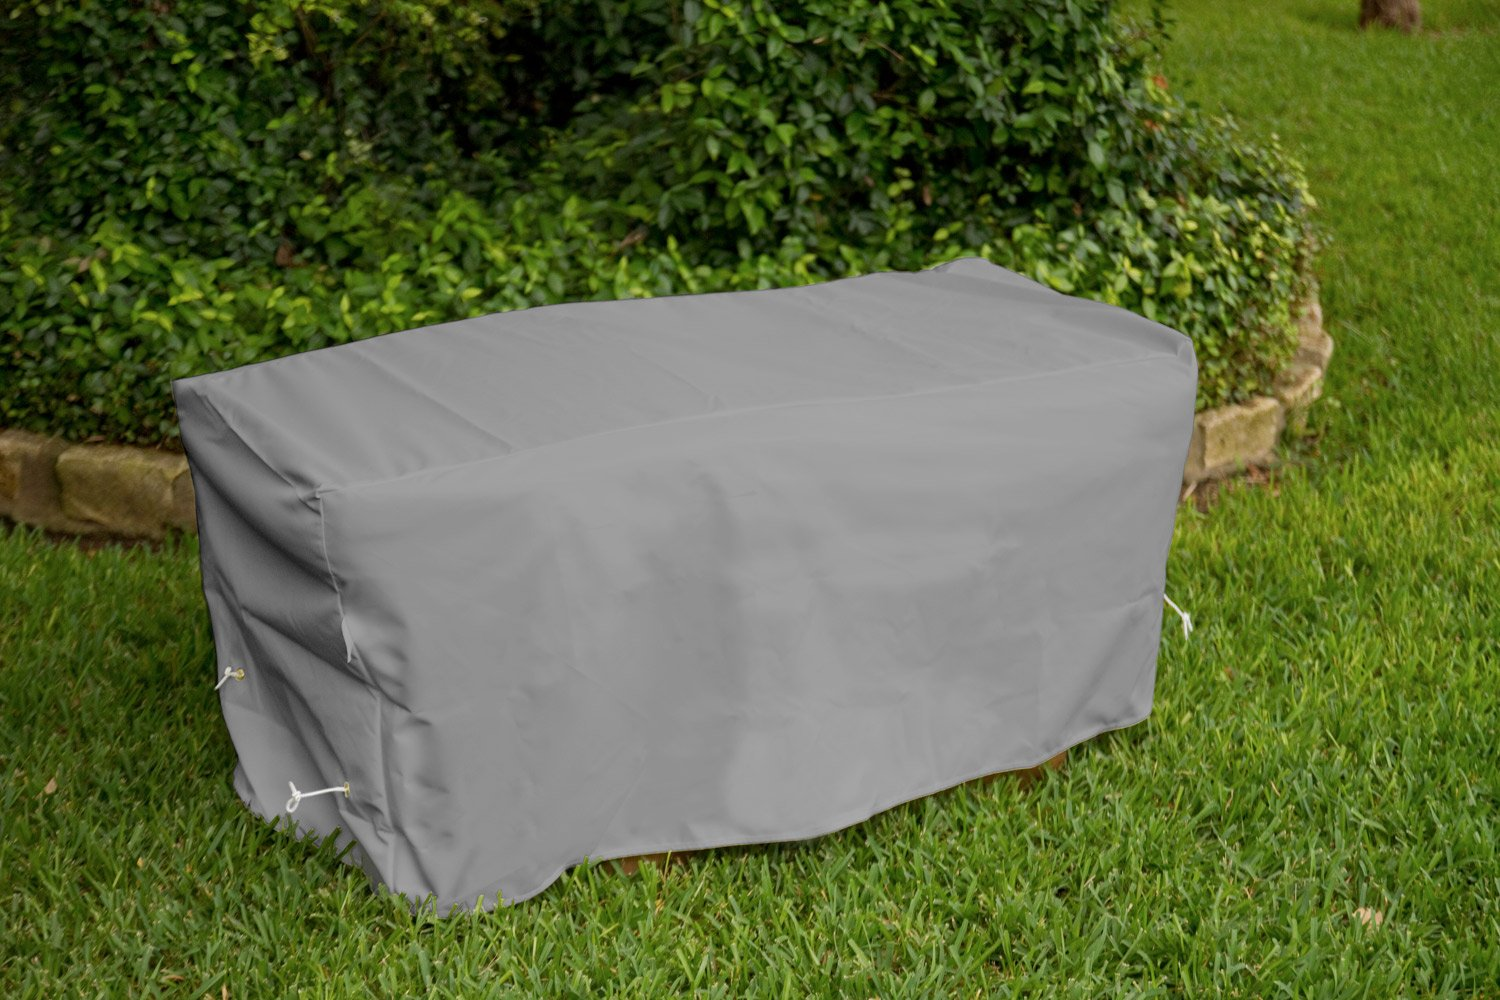 KoverRoos Weathermax 84214 6-Feet Garden Seat Cover, 72-Inch Width by 28-Inch Diameter by 18-Inch Height, Charcoal by KOVERROOS (Image #3)